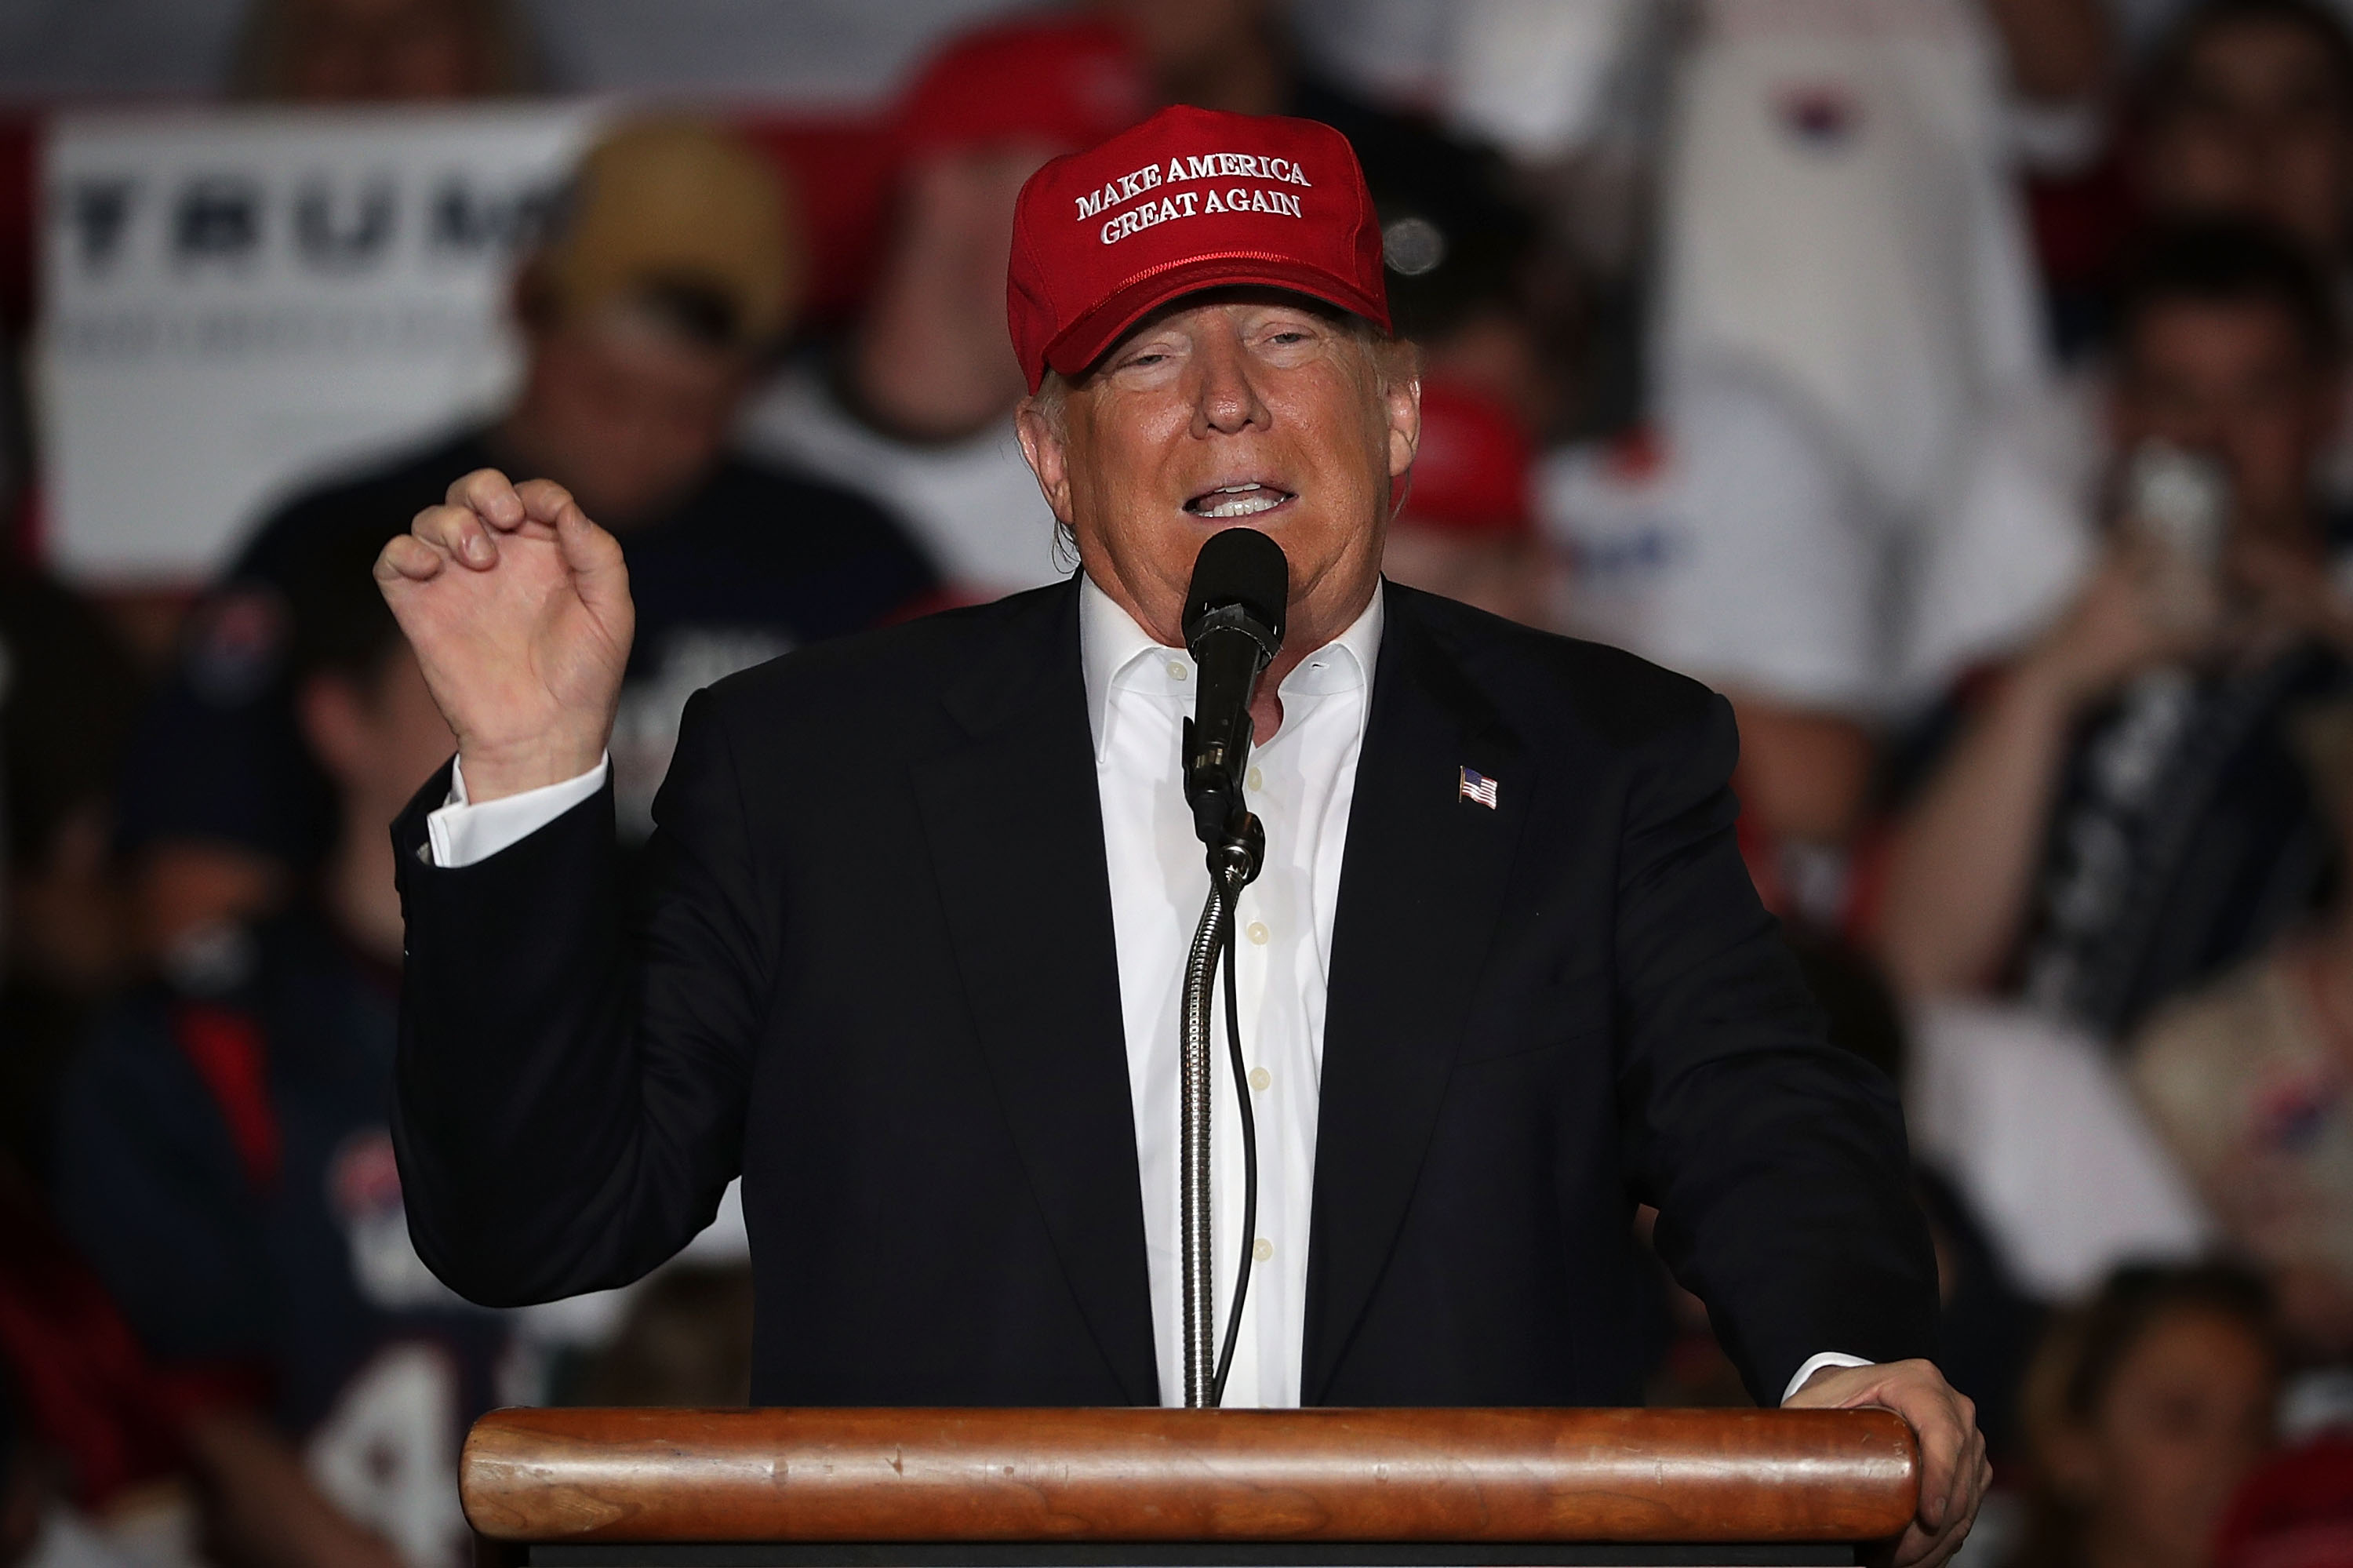 Republican presidential candidate Donald Trump speaks during a campaign rally on April 22, in Harrington, Delaware.